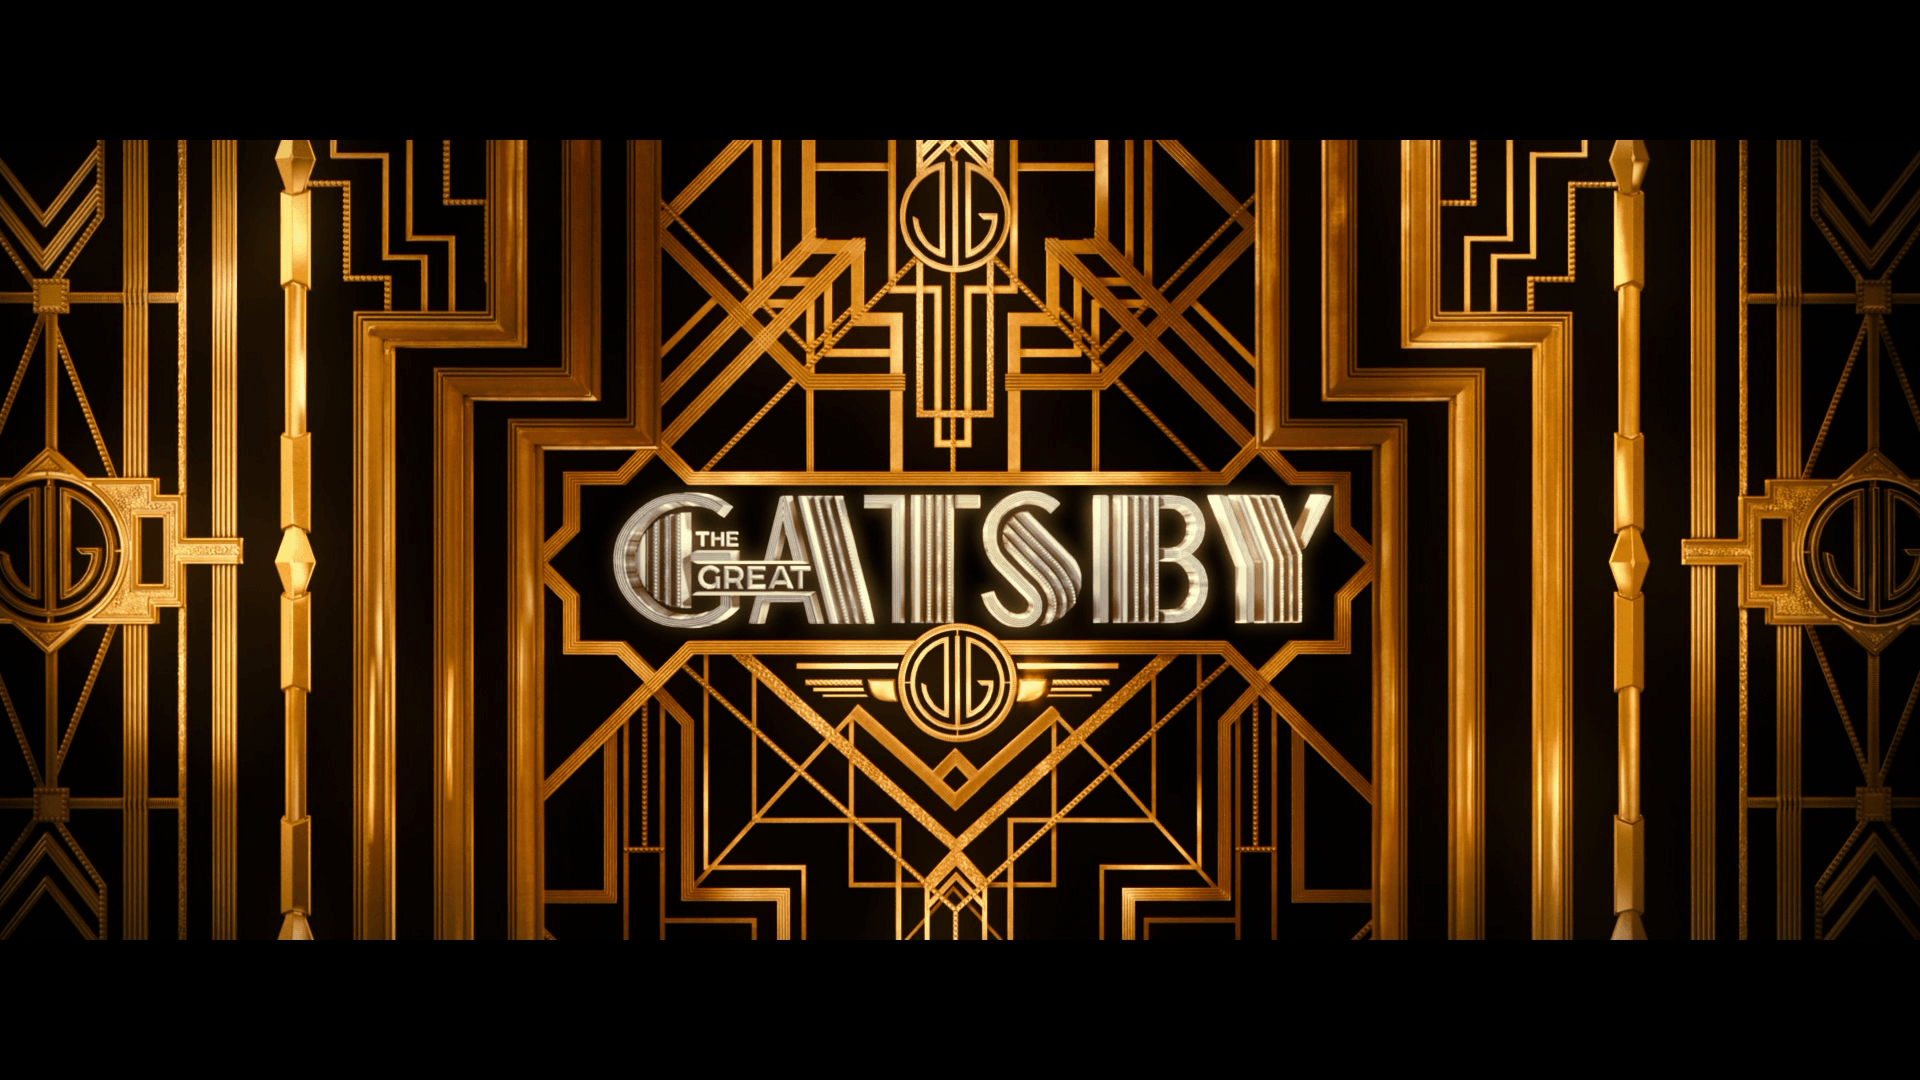 the great gatsby Though the great gatsby runs to fewer than two hundred pages, there is no bigger read in american literature introduction to the book f scott fitzgerald's 1925 novel the great gatsby is a tragic love story, a mystery, and a social commentary on american life.